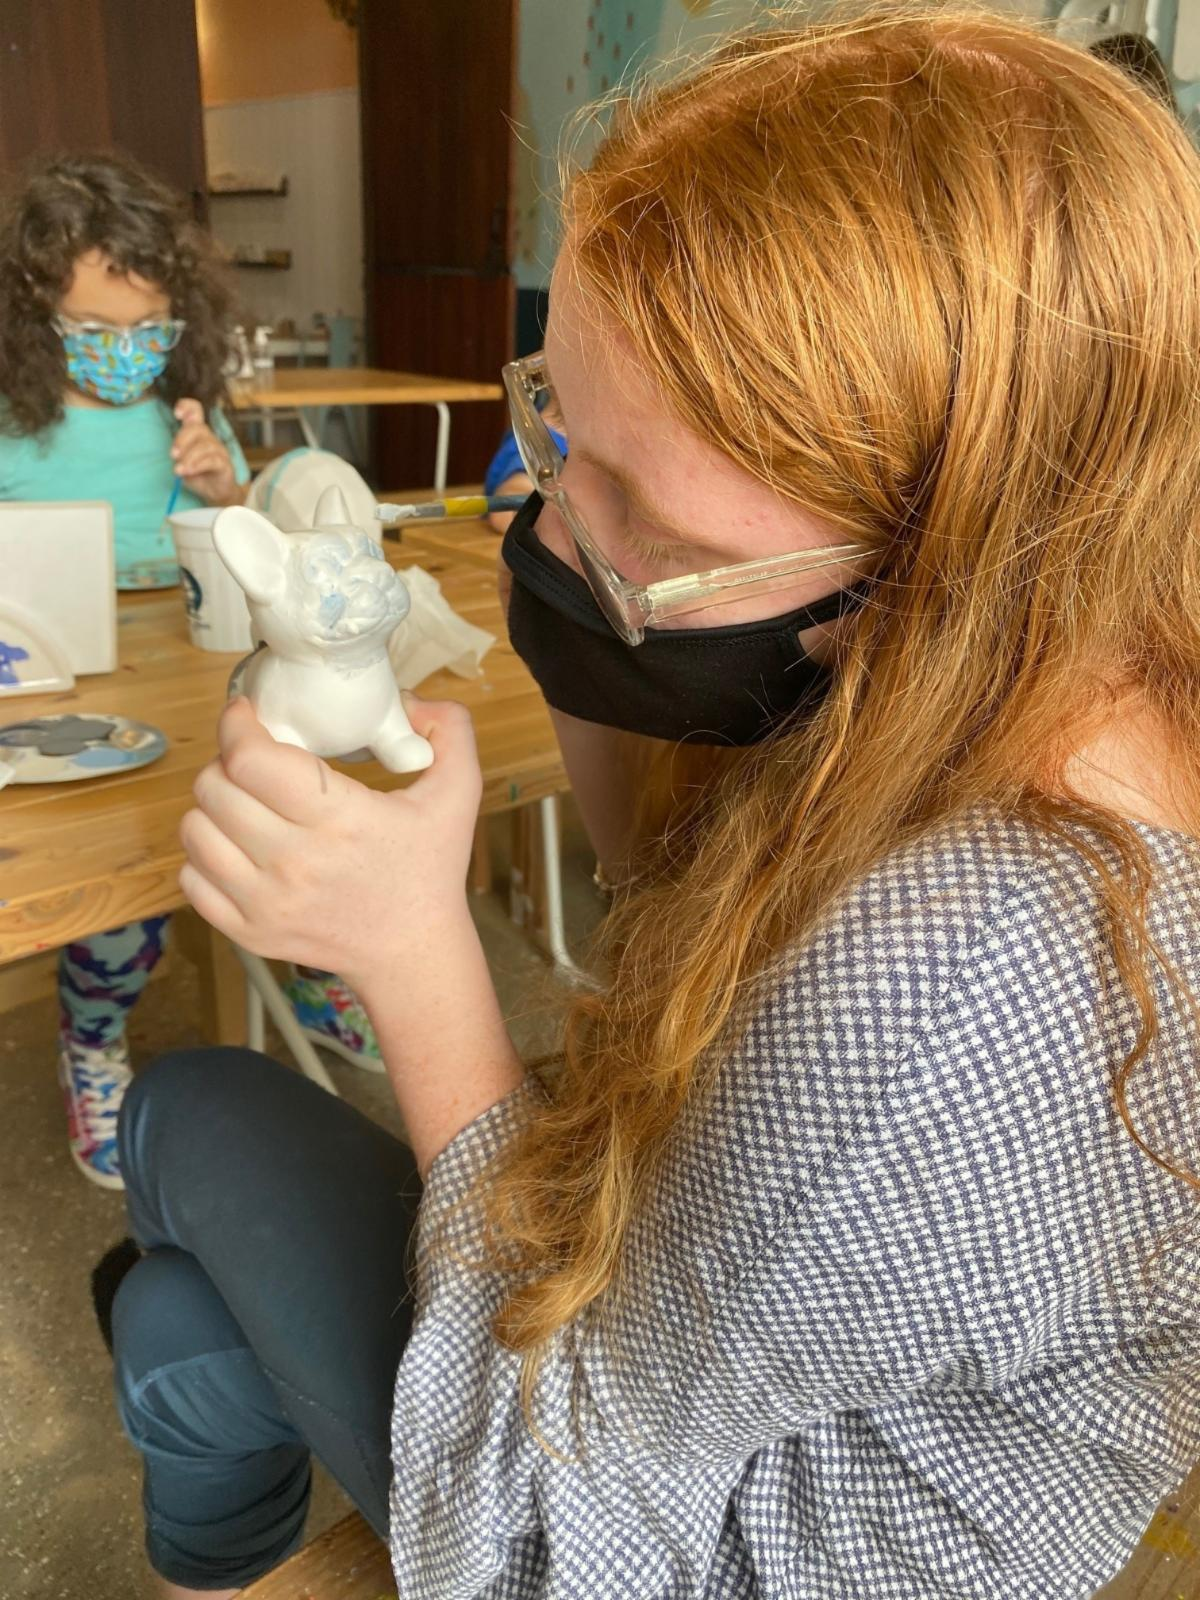 Young red head girl painting a pottery dog